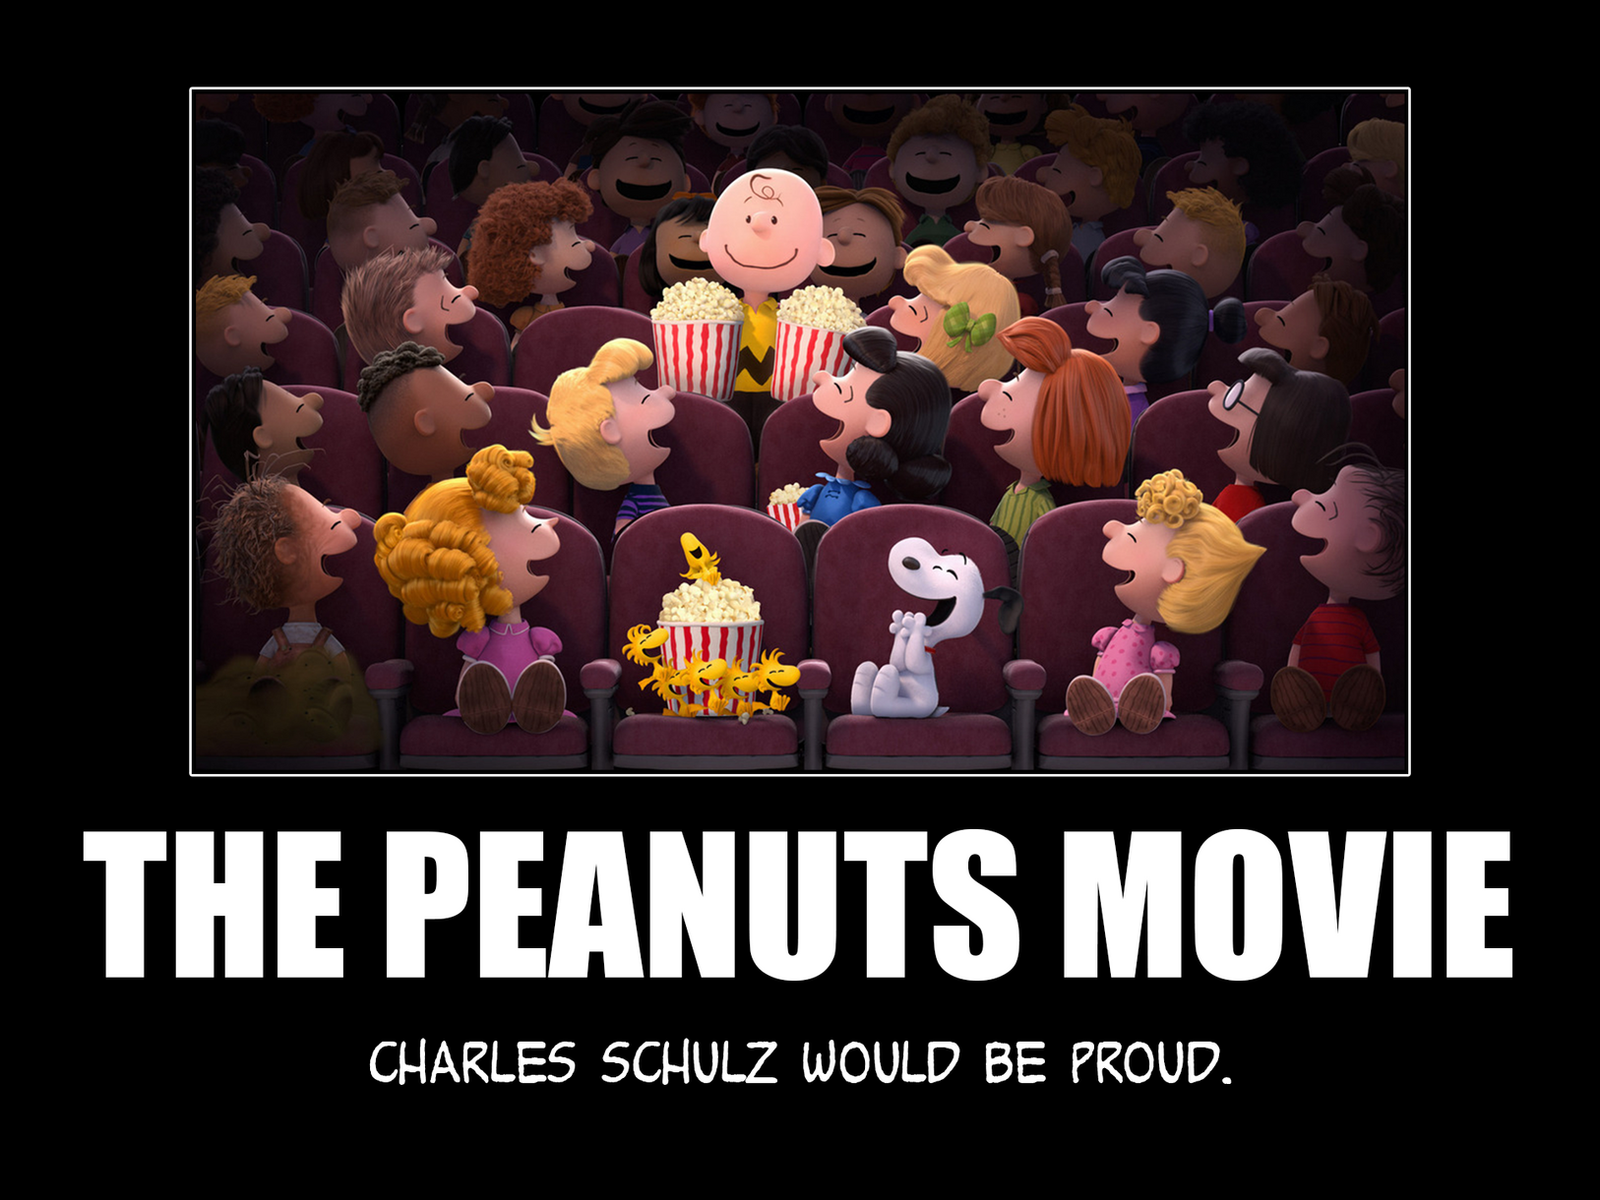 the_peanuts_movie_by_greenmachine987 d9guvo1 the peanuts movie by greenmachine987 on deviantart